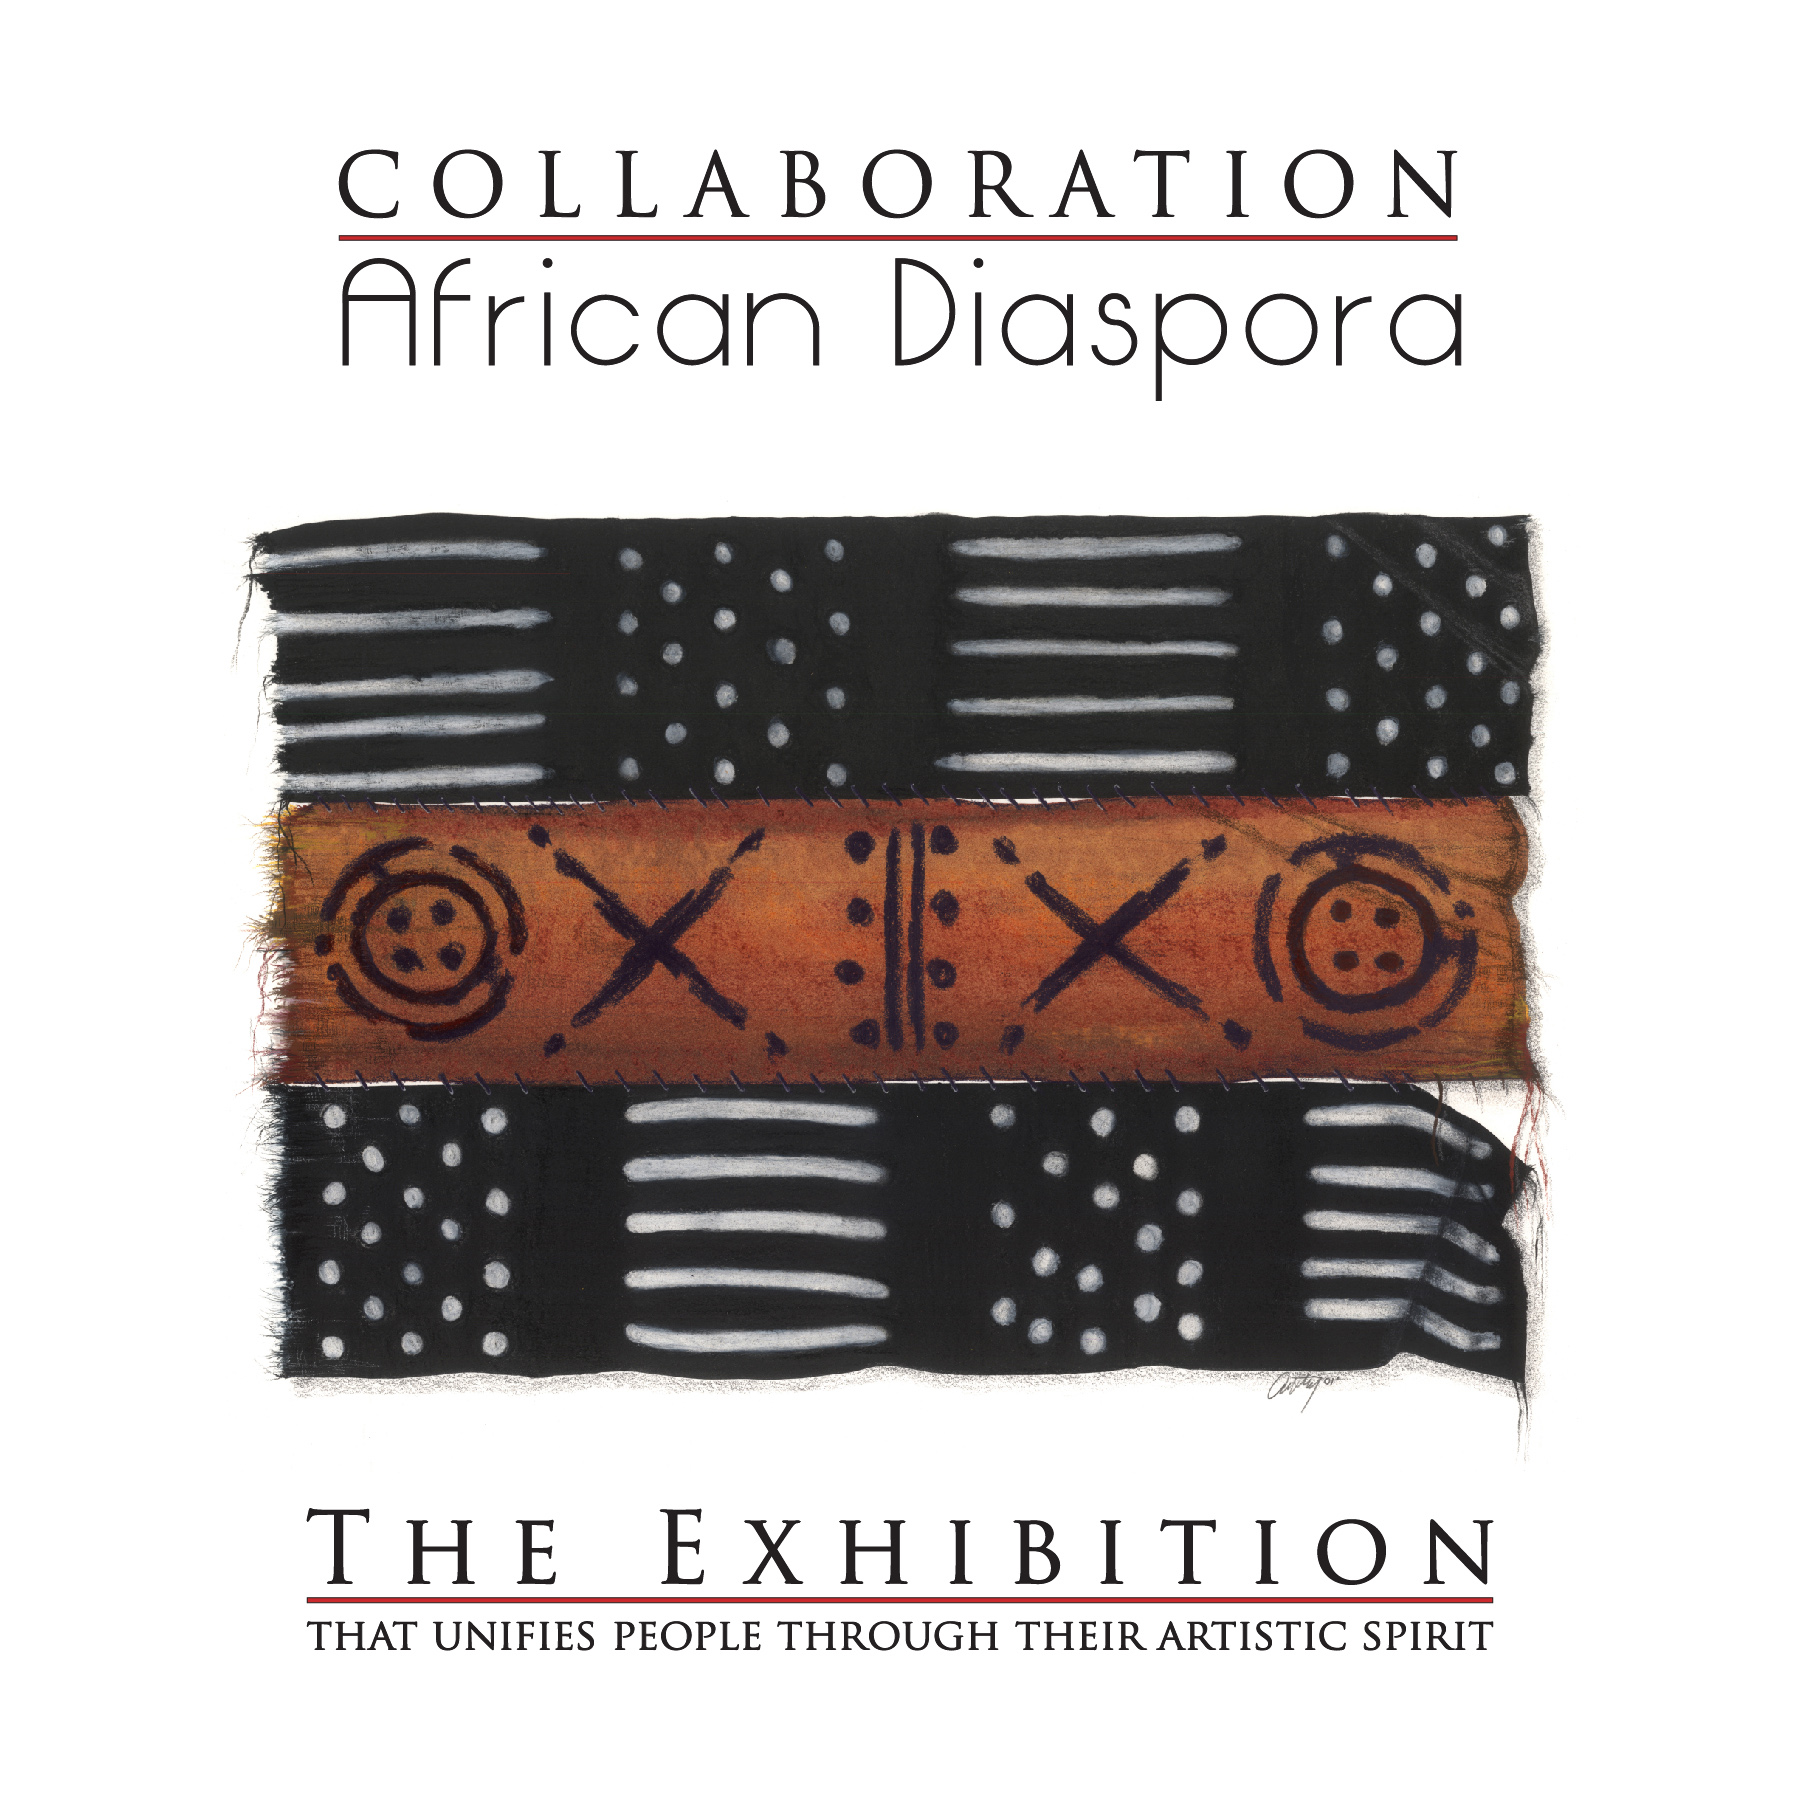 Collaboration African Diaspora Exhibition